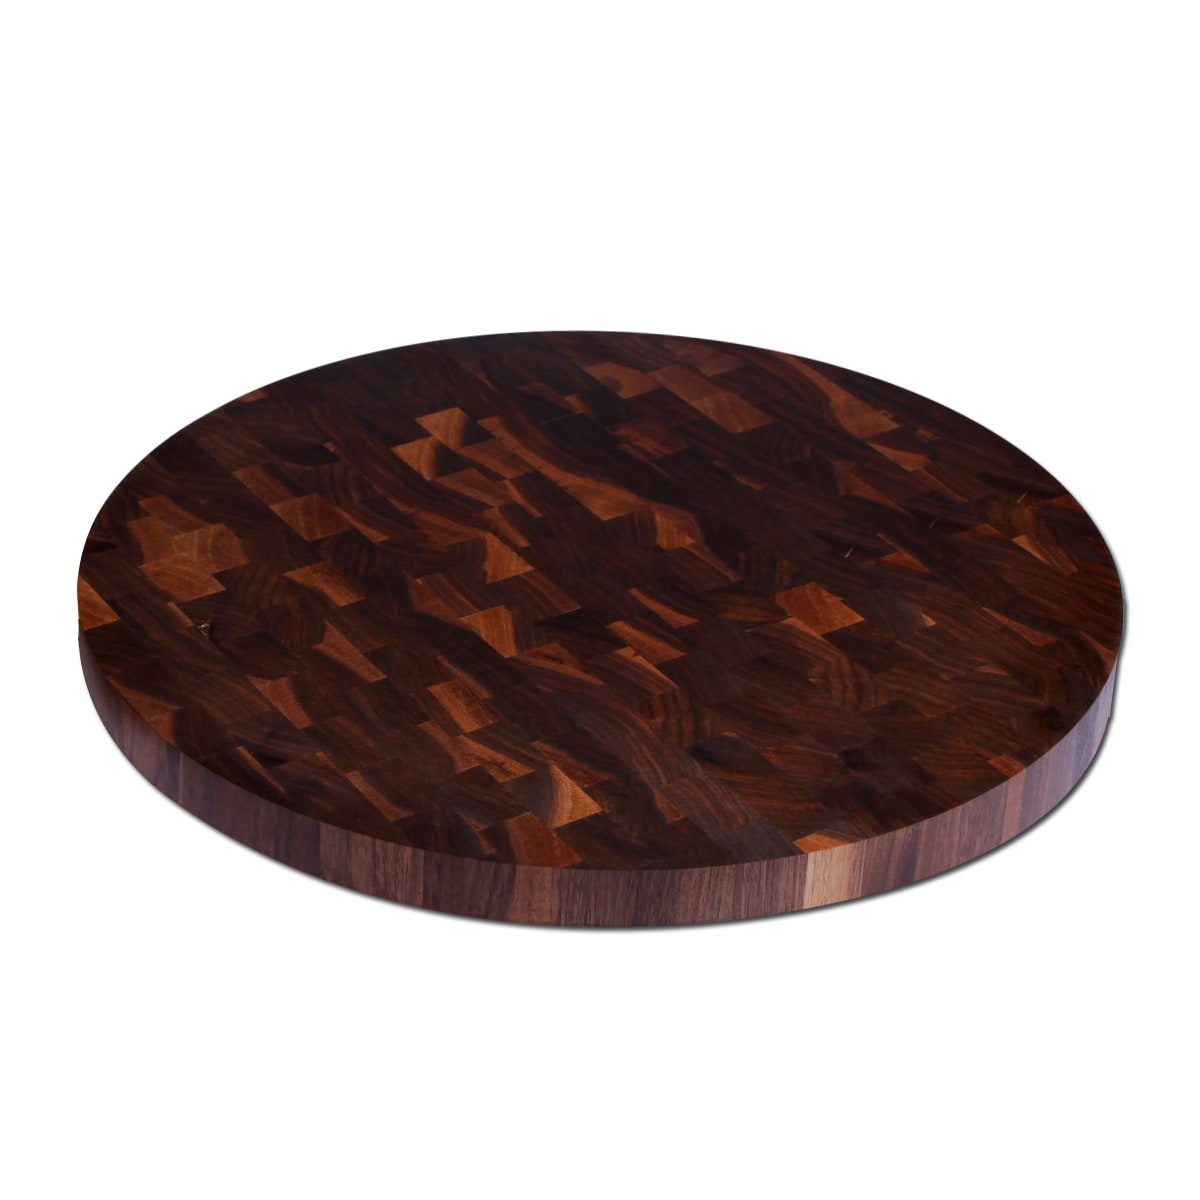 Kobi Walnut Wood Round Butcher Block Cutting Board